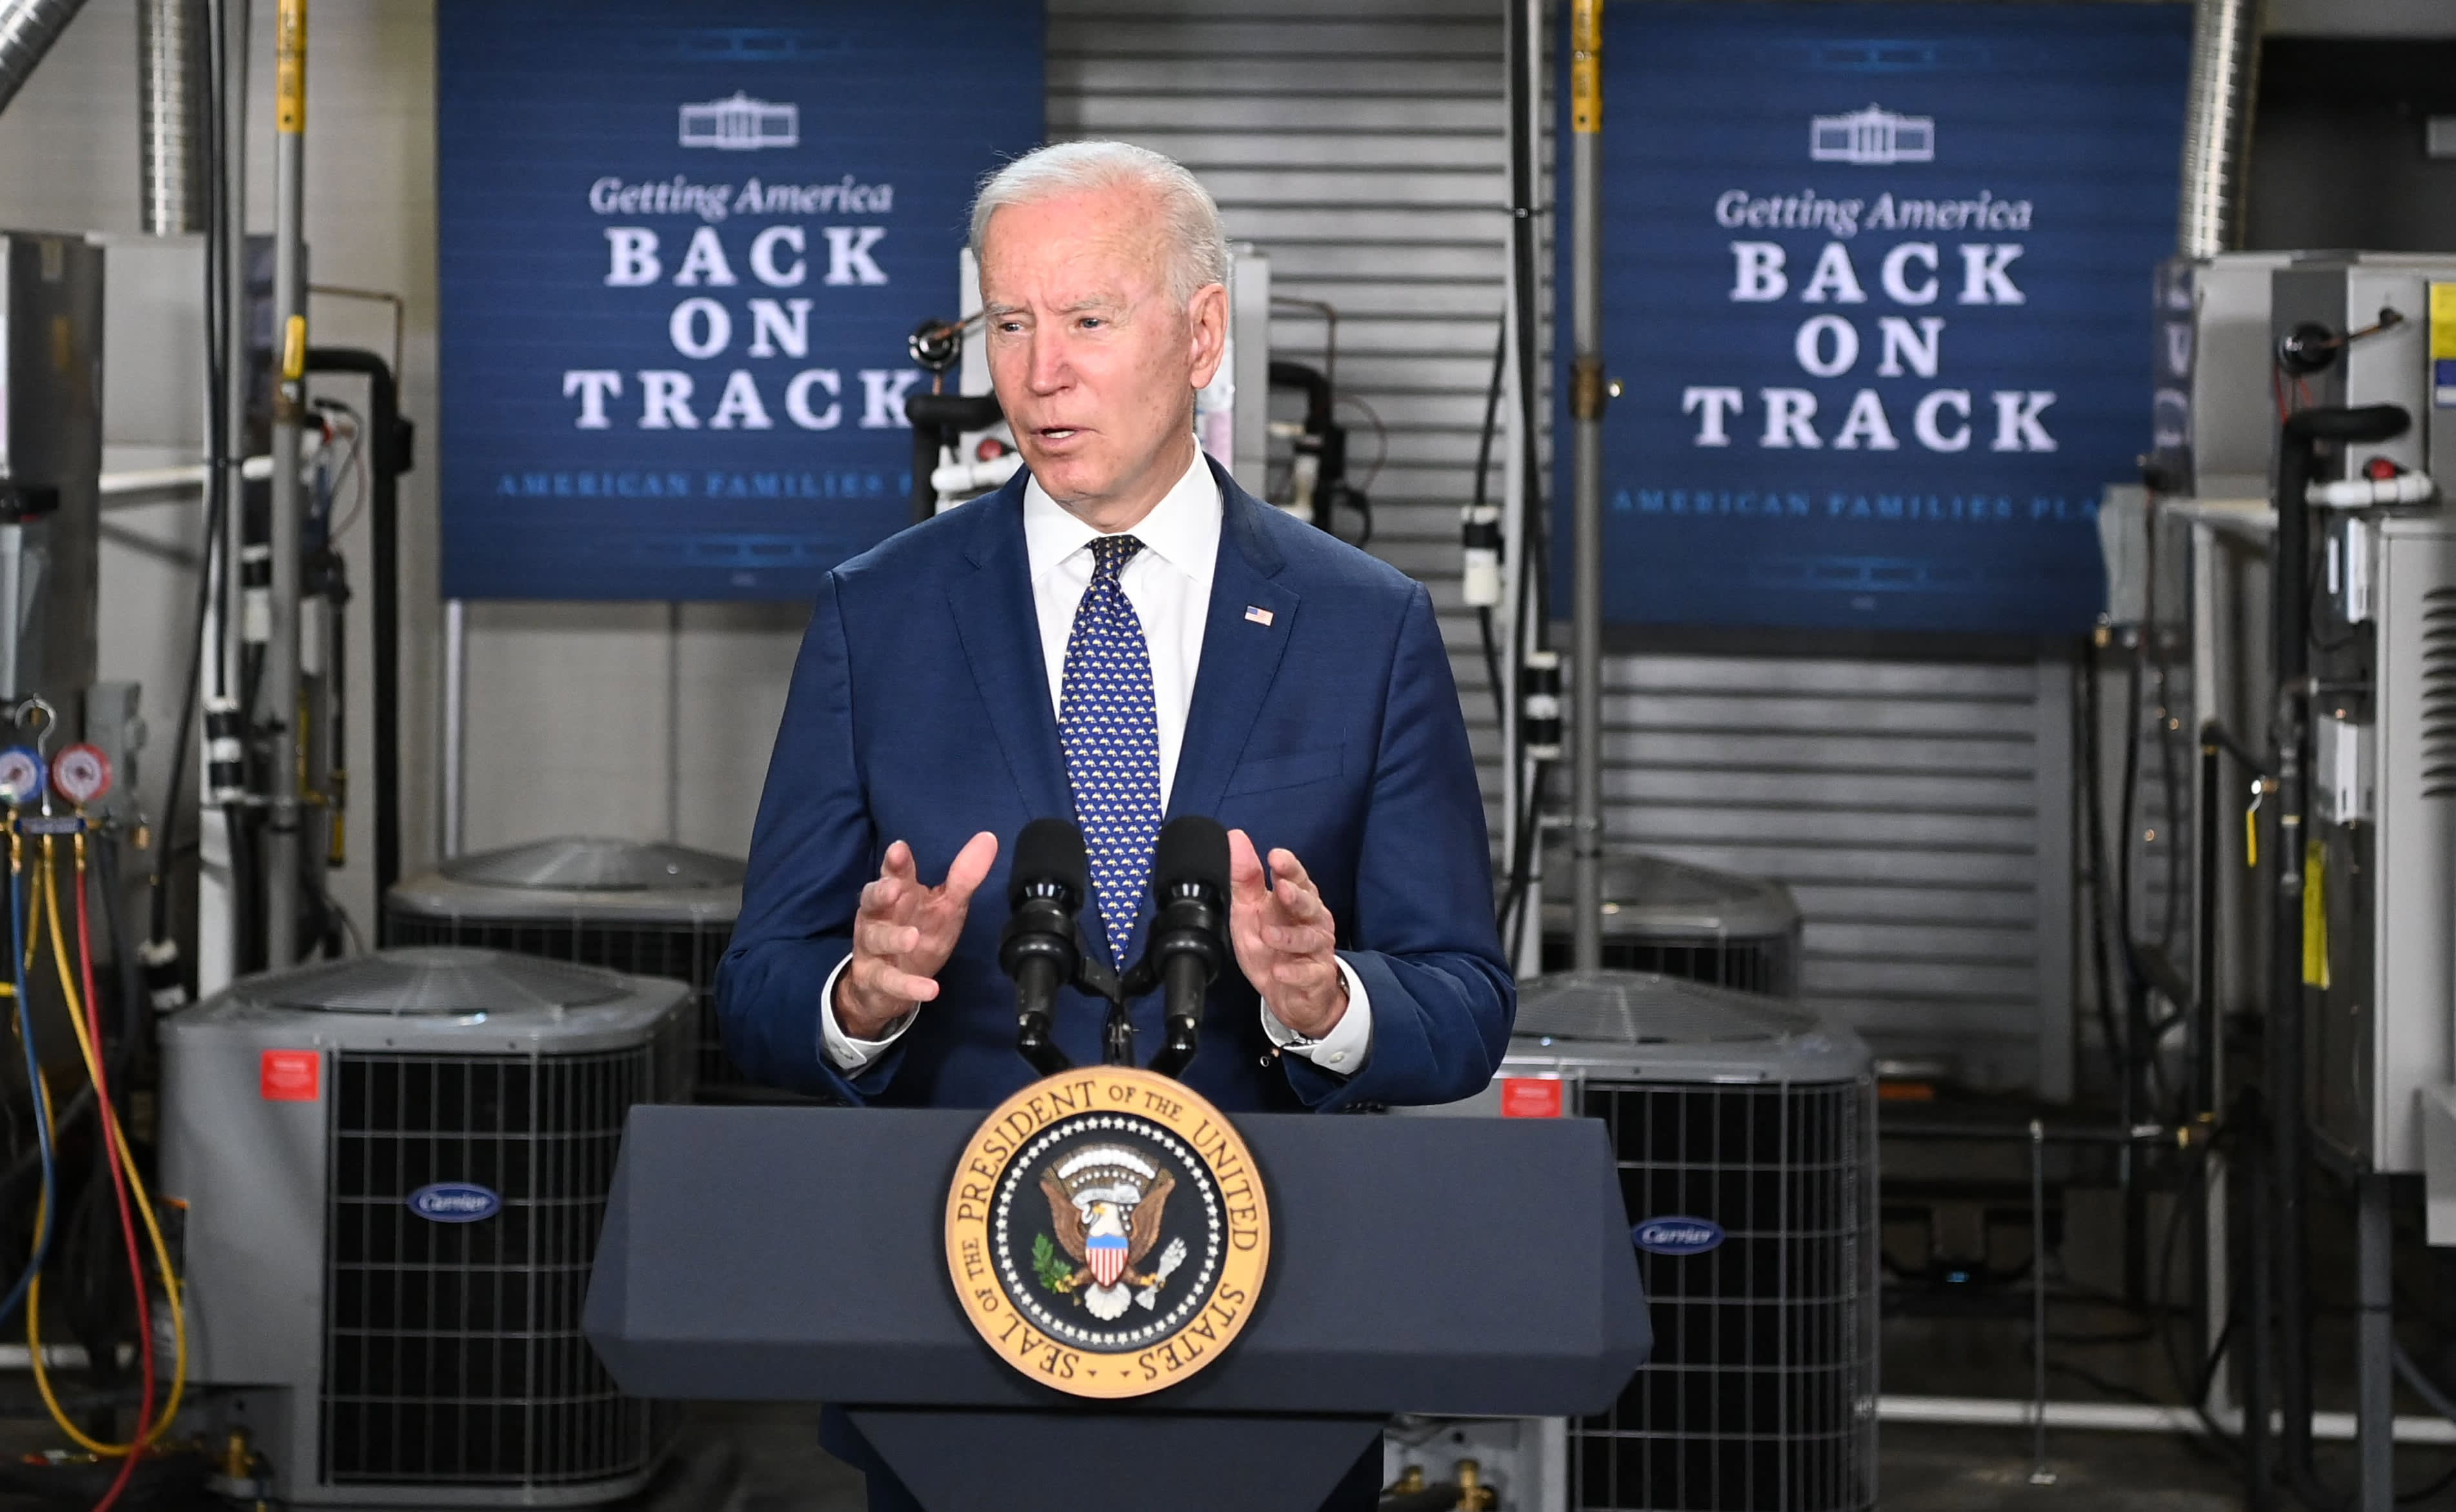 Biden and McConnell harden their positions on tax hikes